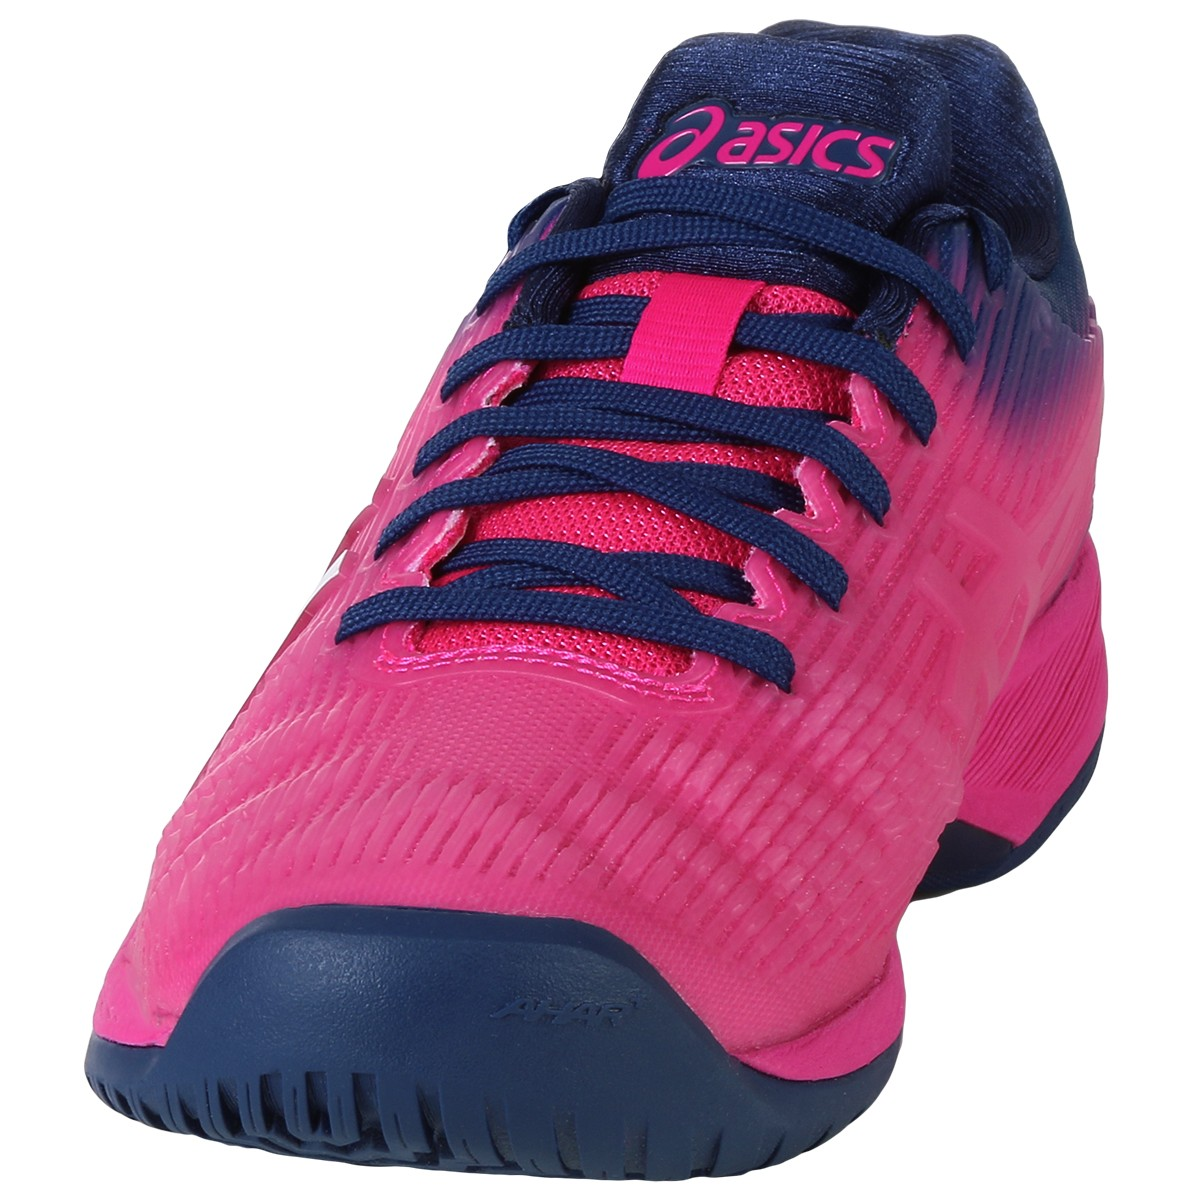 Femme Toutes Solution Speed Ff Chaussures Surfaces Asics EWH2IY9D